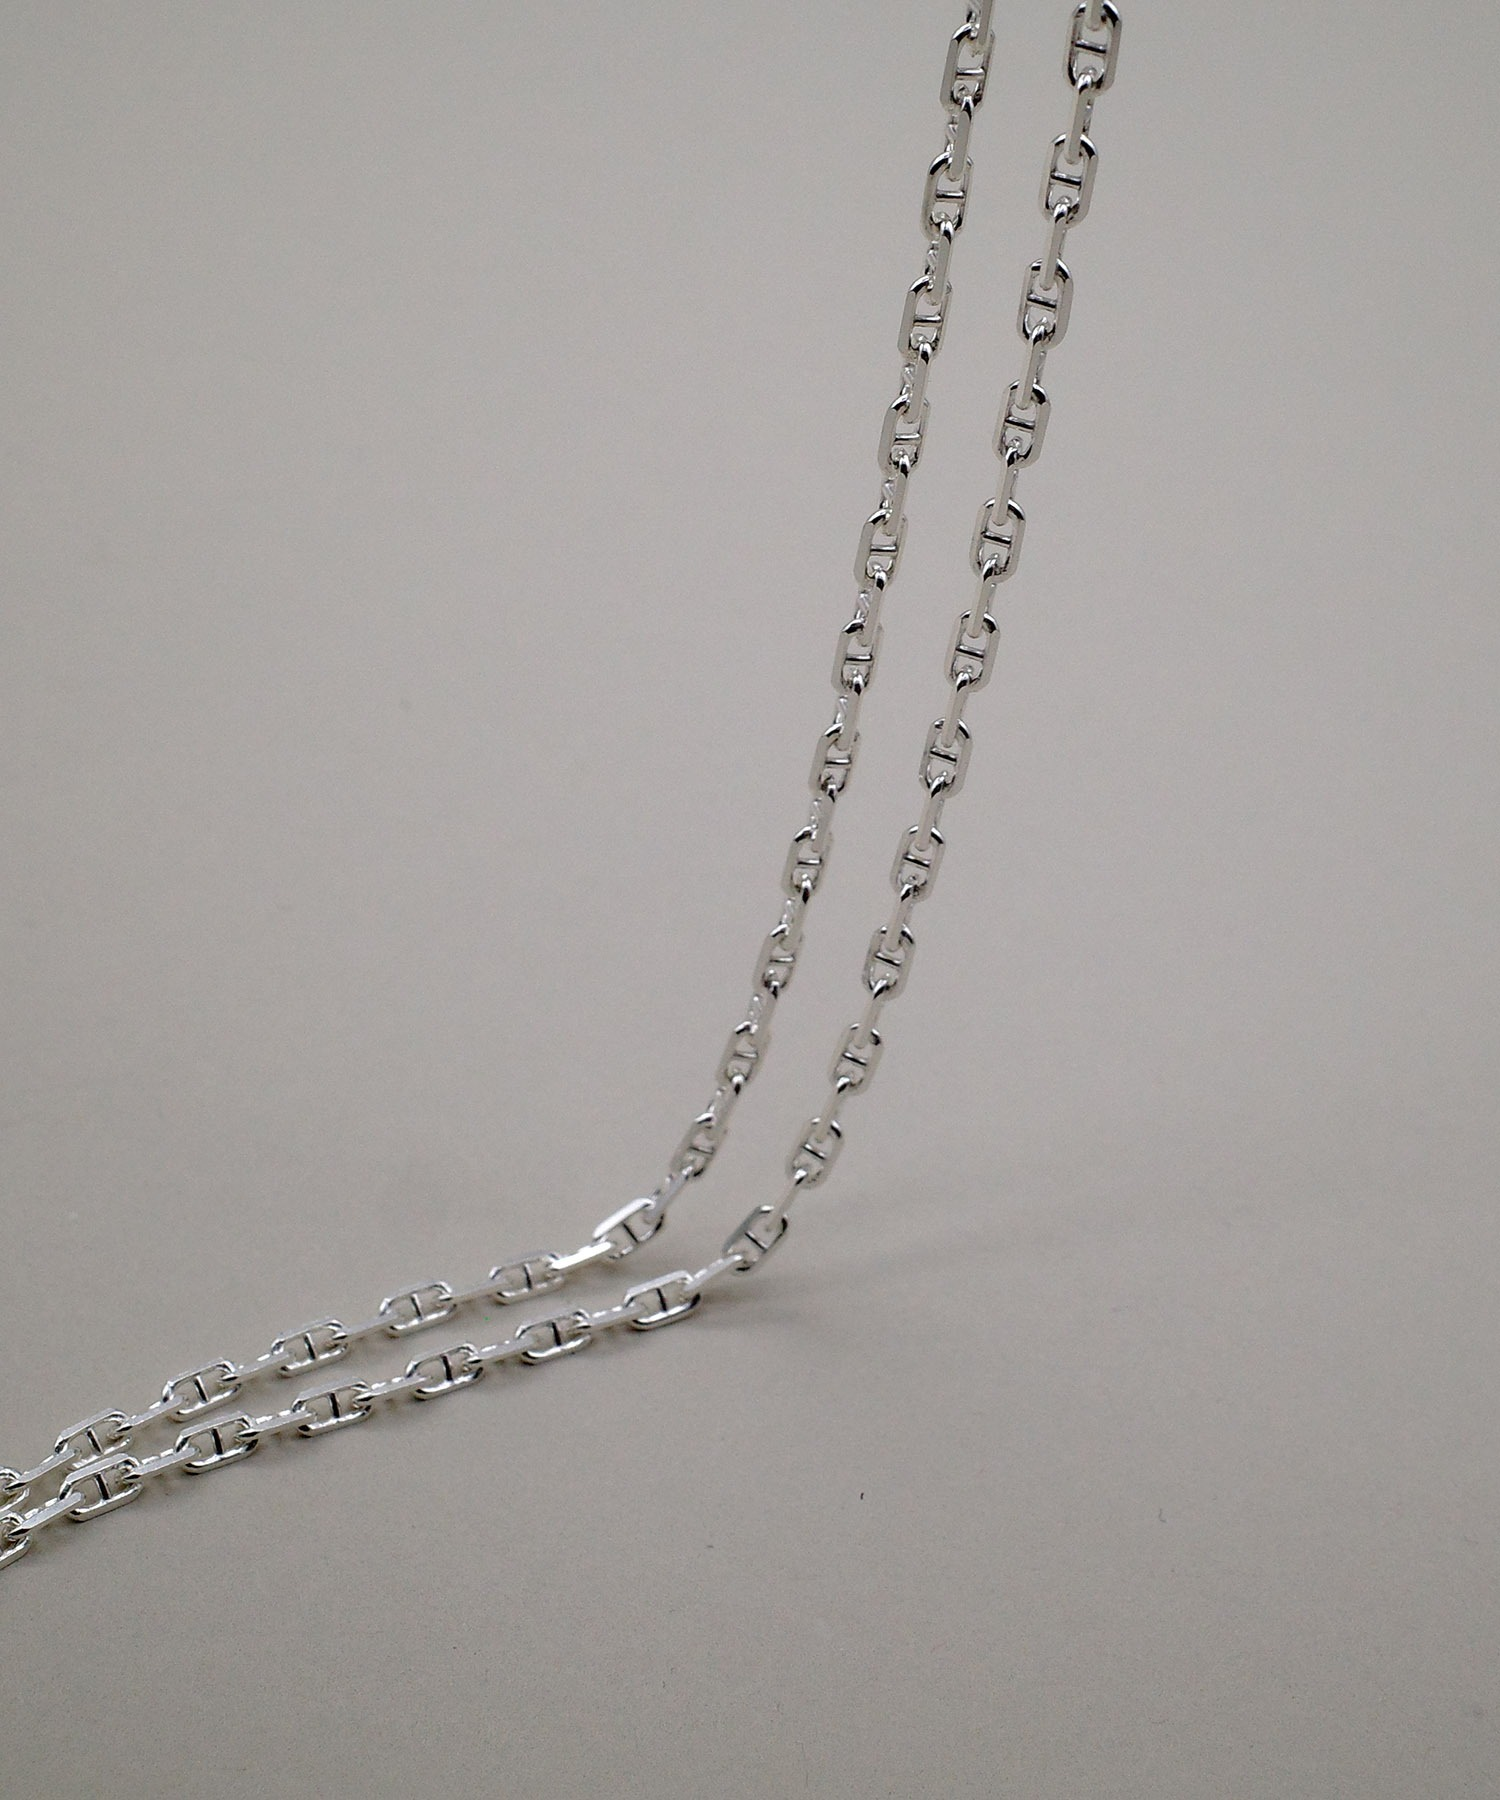 【ISOLATION / アイソレーション】Silver925 Anchor Chain Necklace